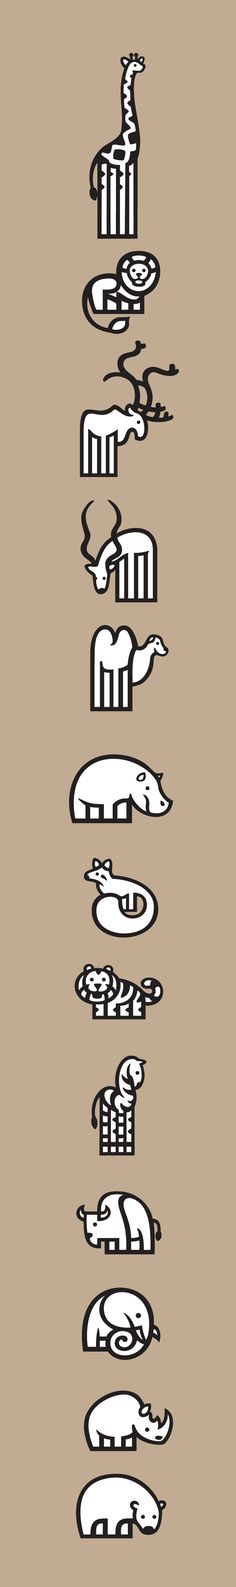 animals #illustration #safari